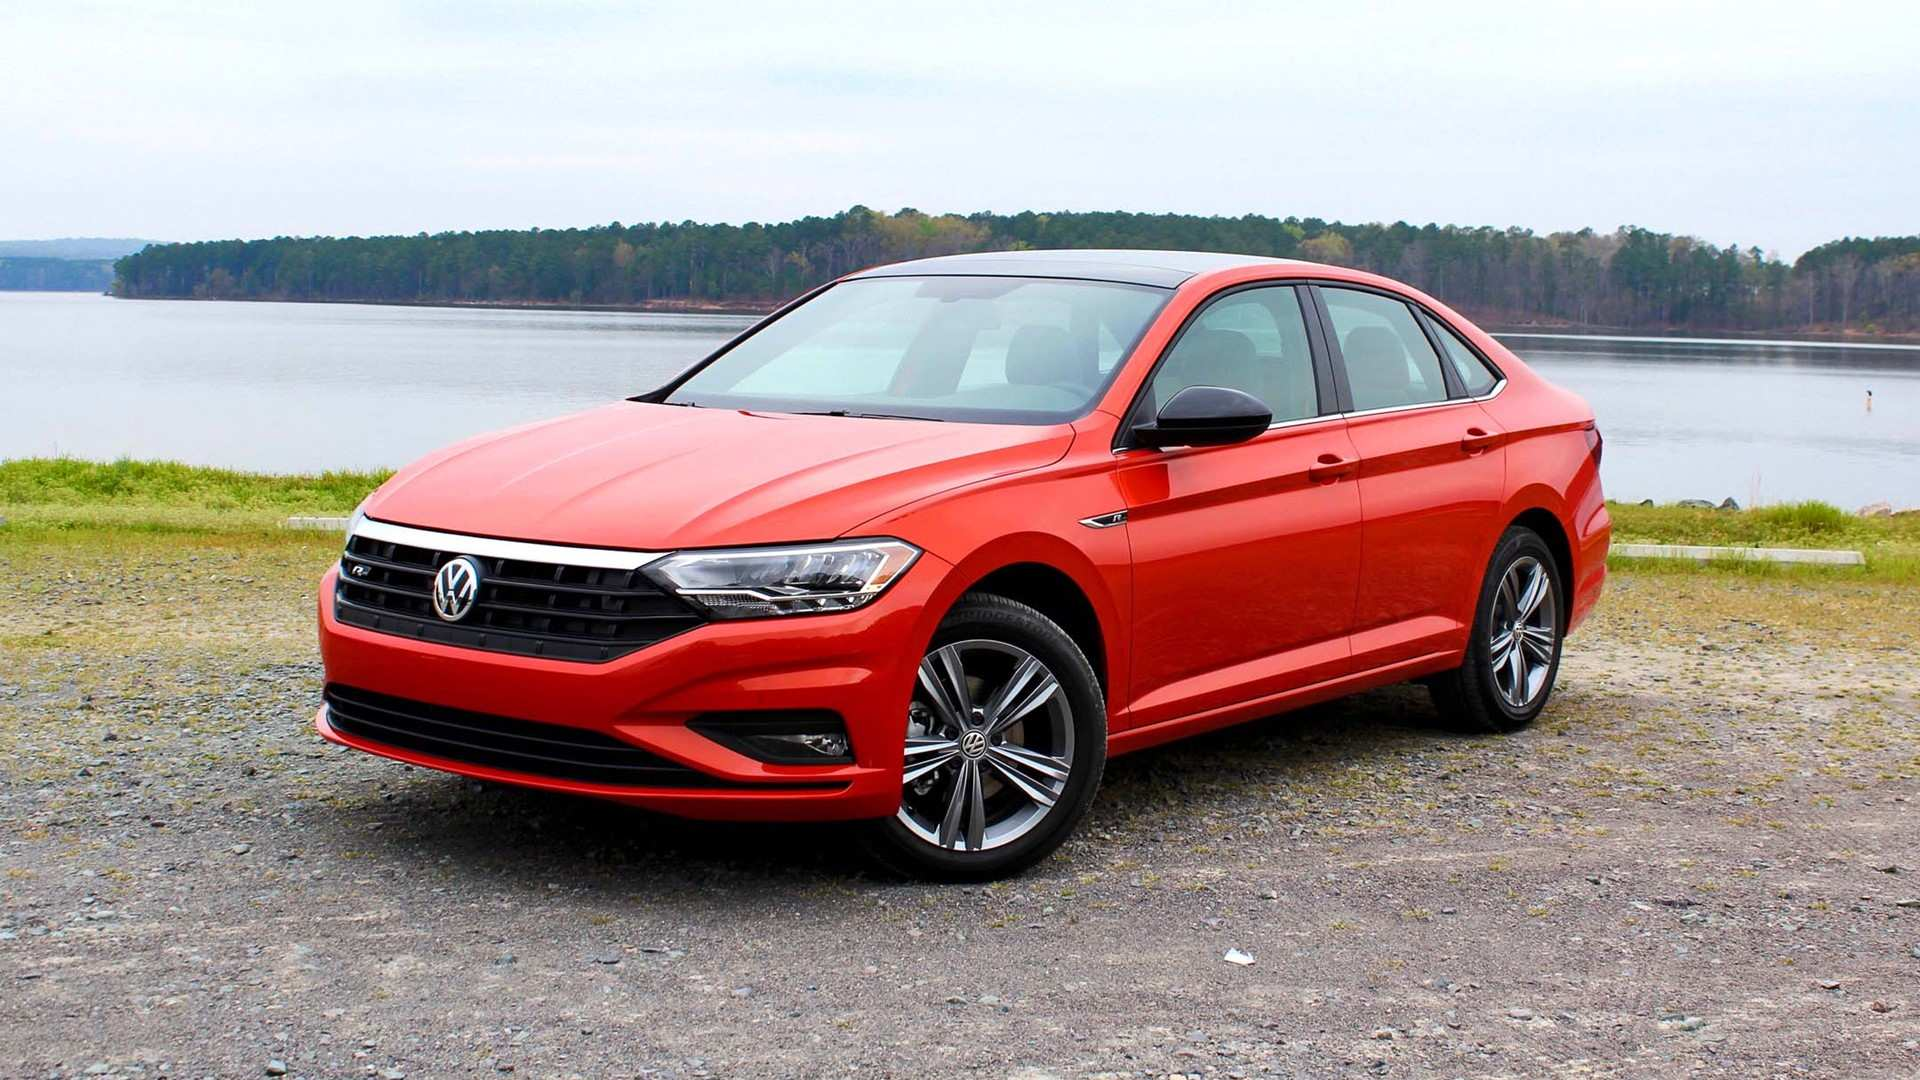 96 Best Review The Volkswagen Canada 2019 Specs And Review Exterior and Interior by The Volkswagen Canada 2019 Specs And Review